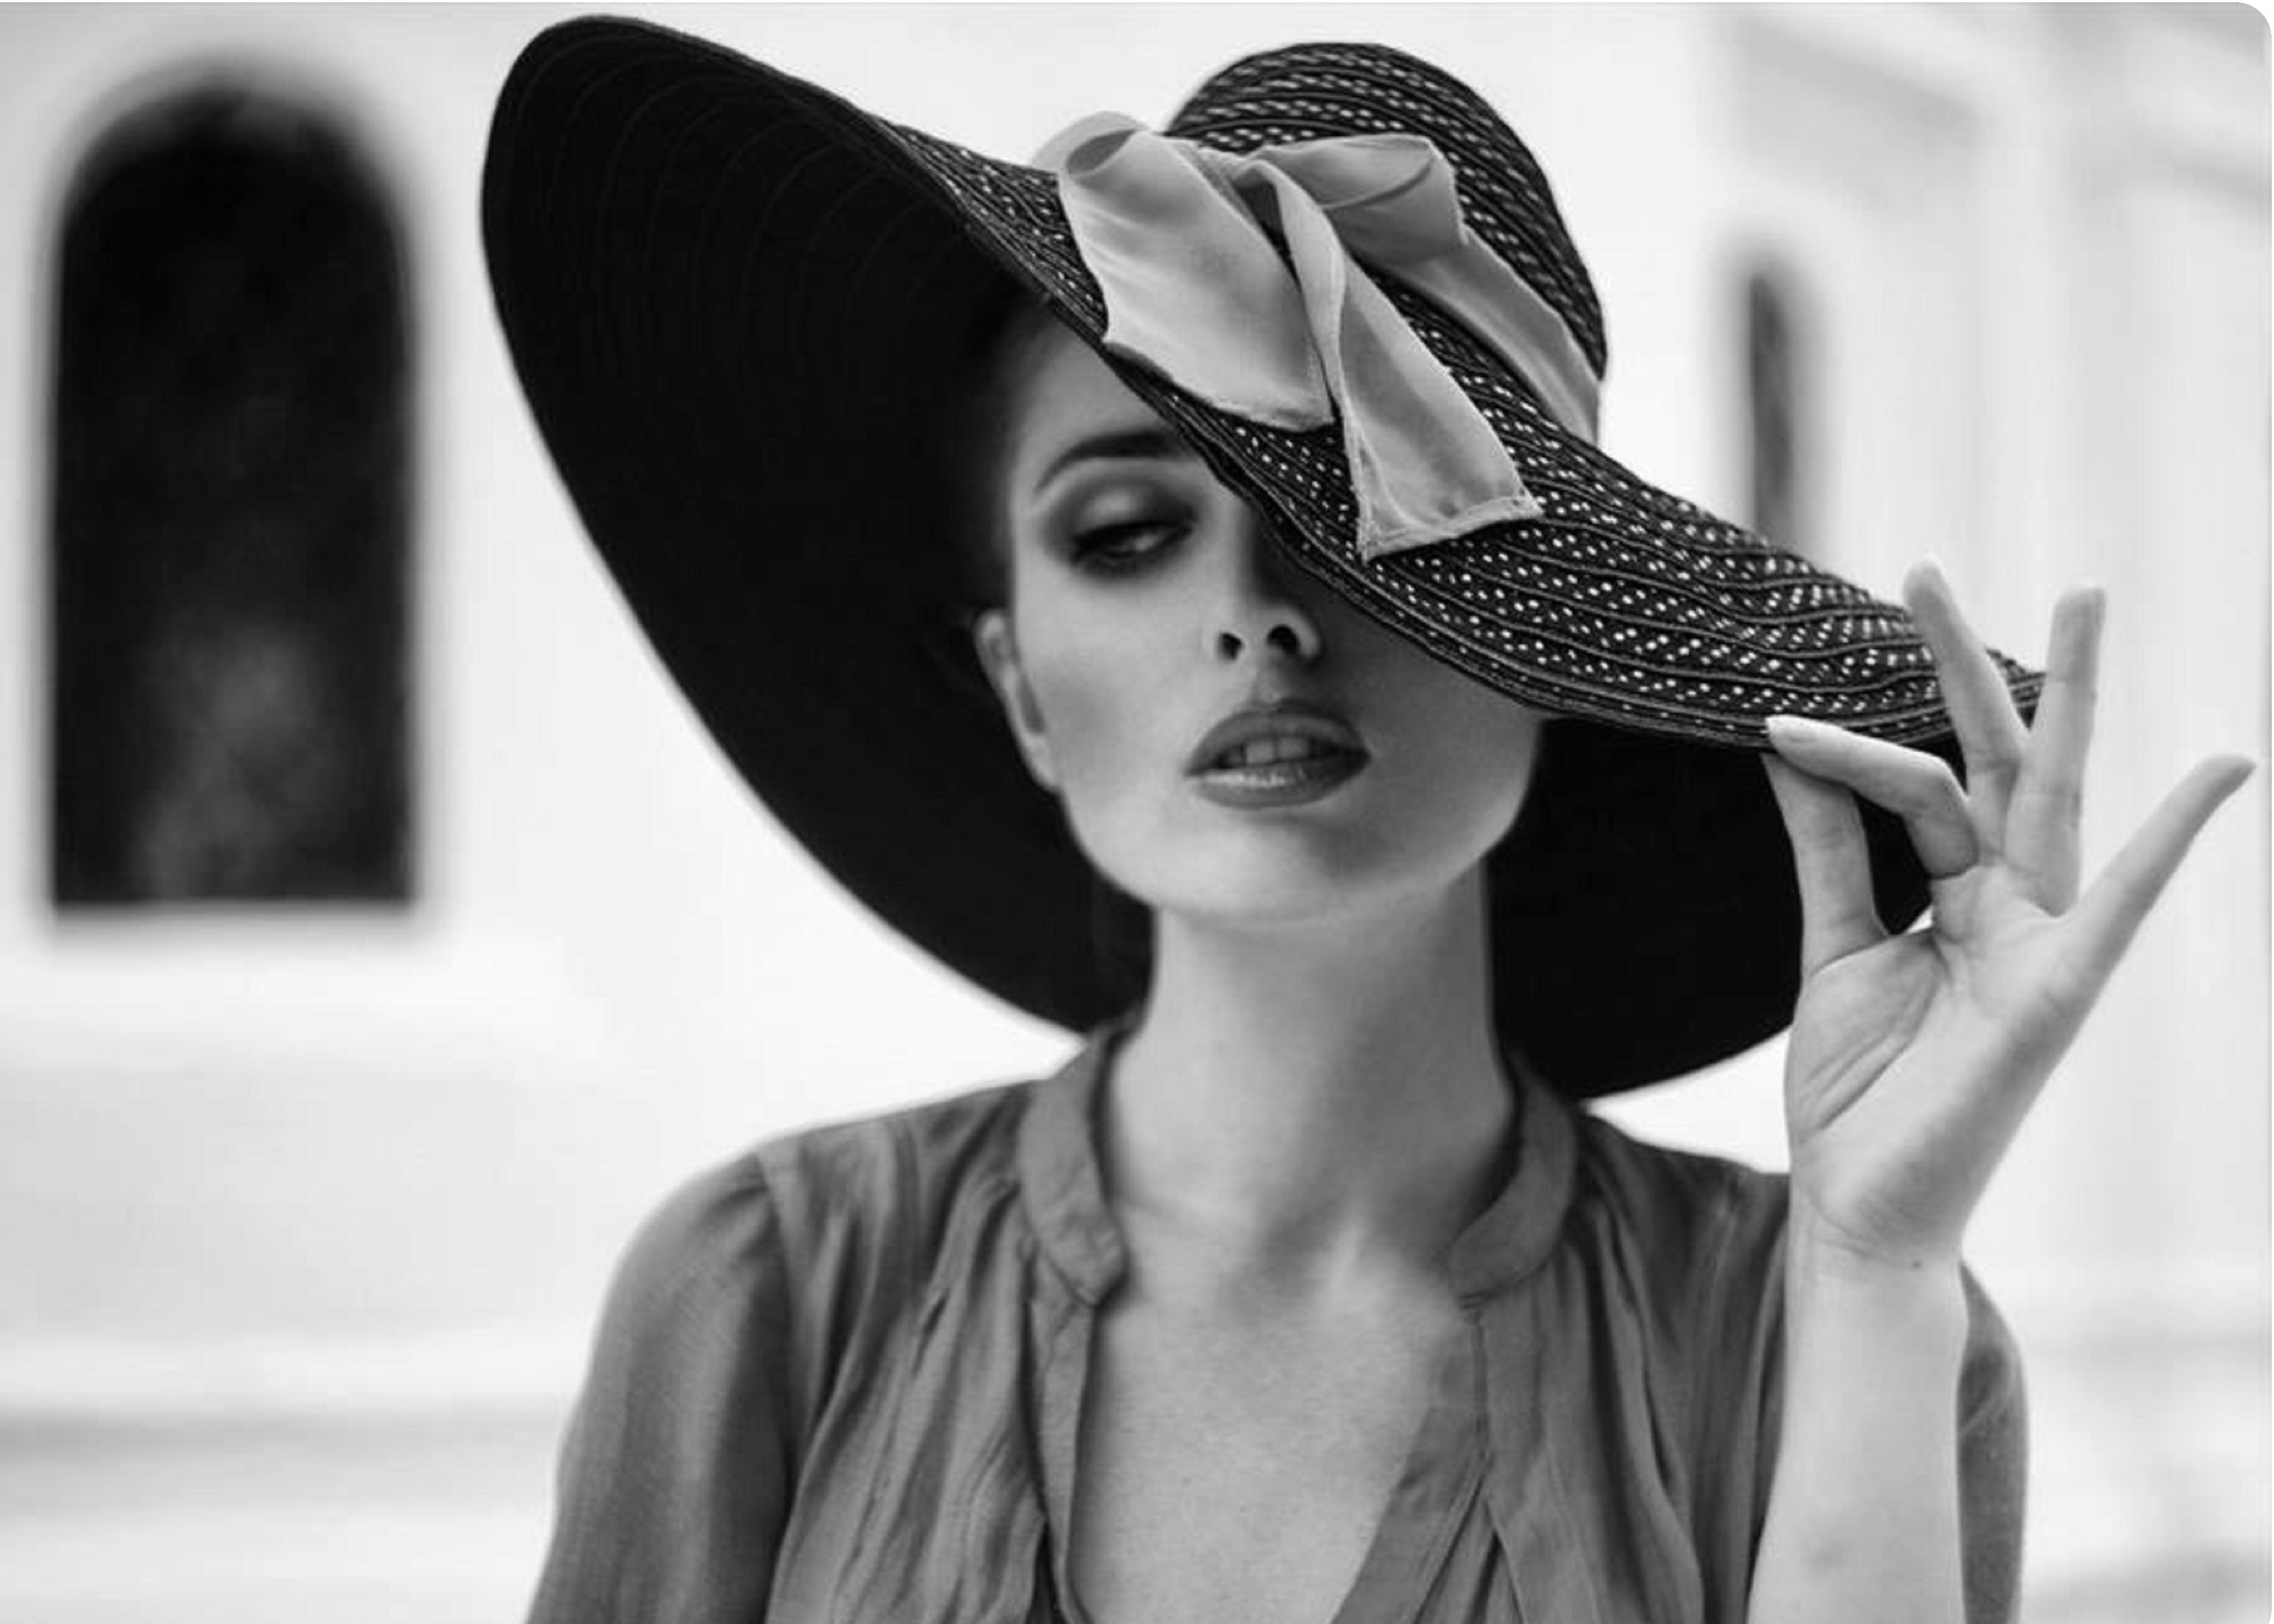 Free Images : grass, person, girl, woman, model, spring ... |Hat Fashion Photography